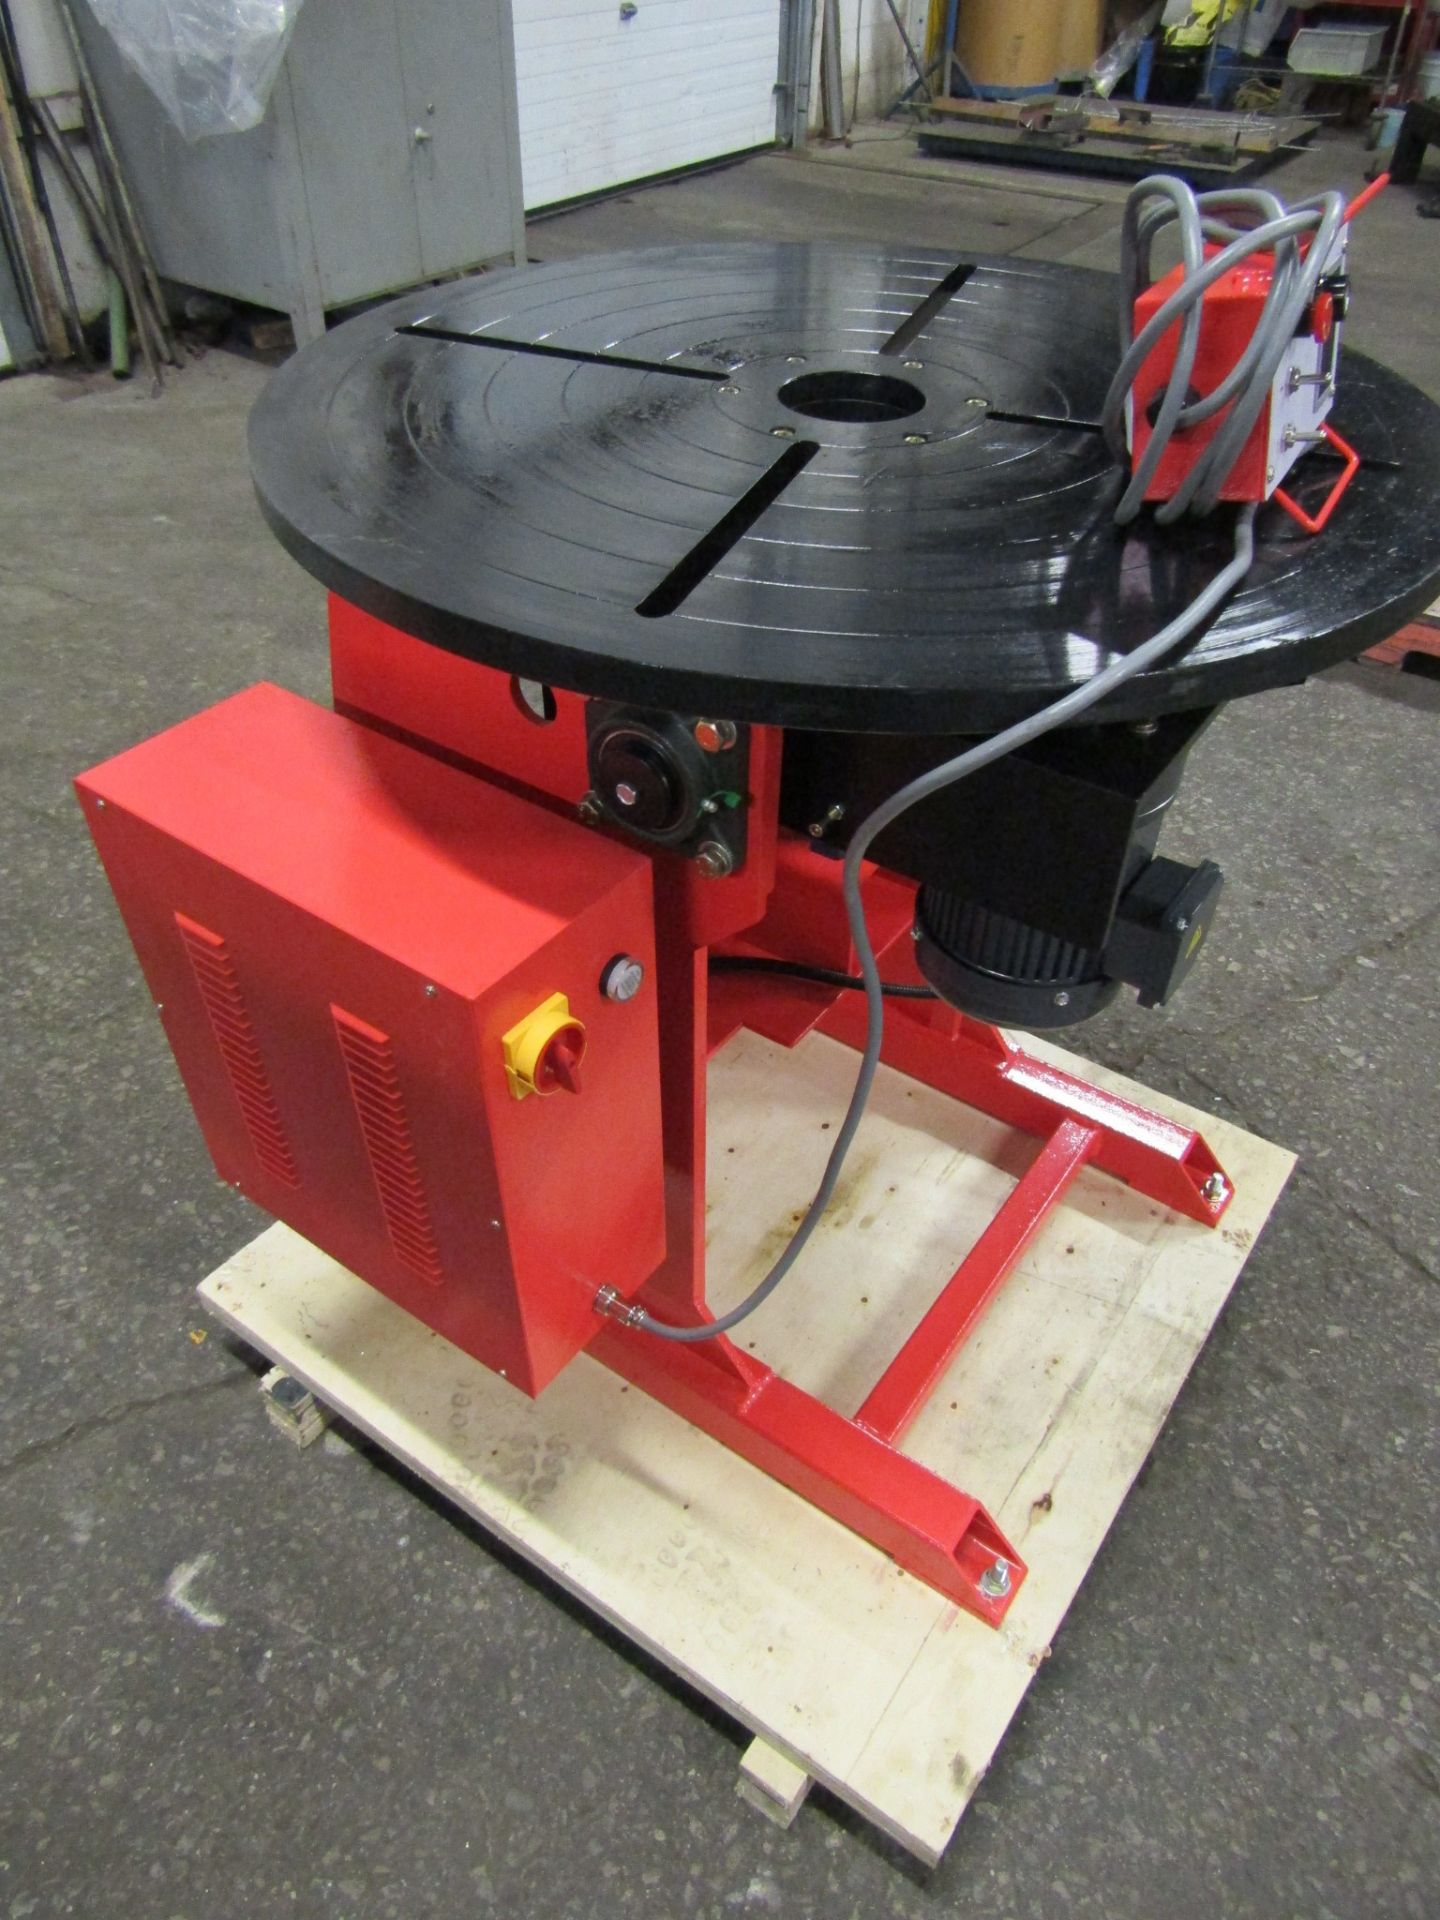 ***** Verner model VD-1500 WELDING POSITIONER 1500lbs capacity - tilt and rotate with variable speed - Image 2 of 2